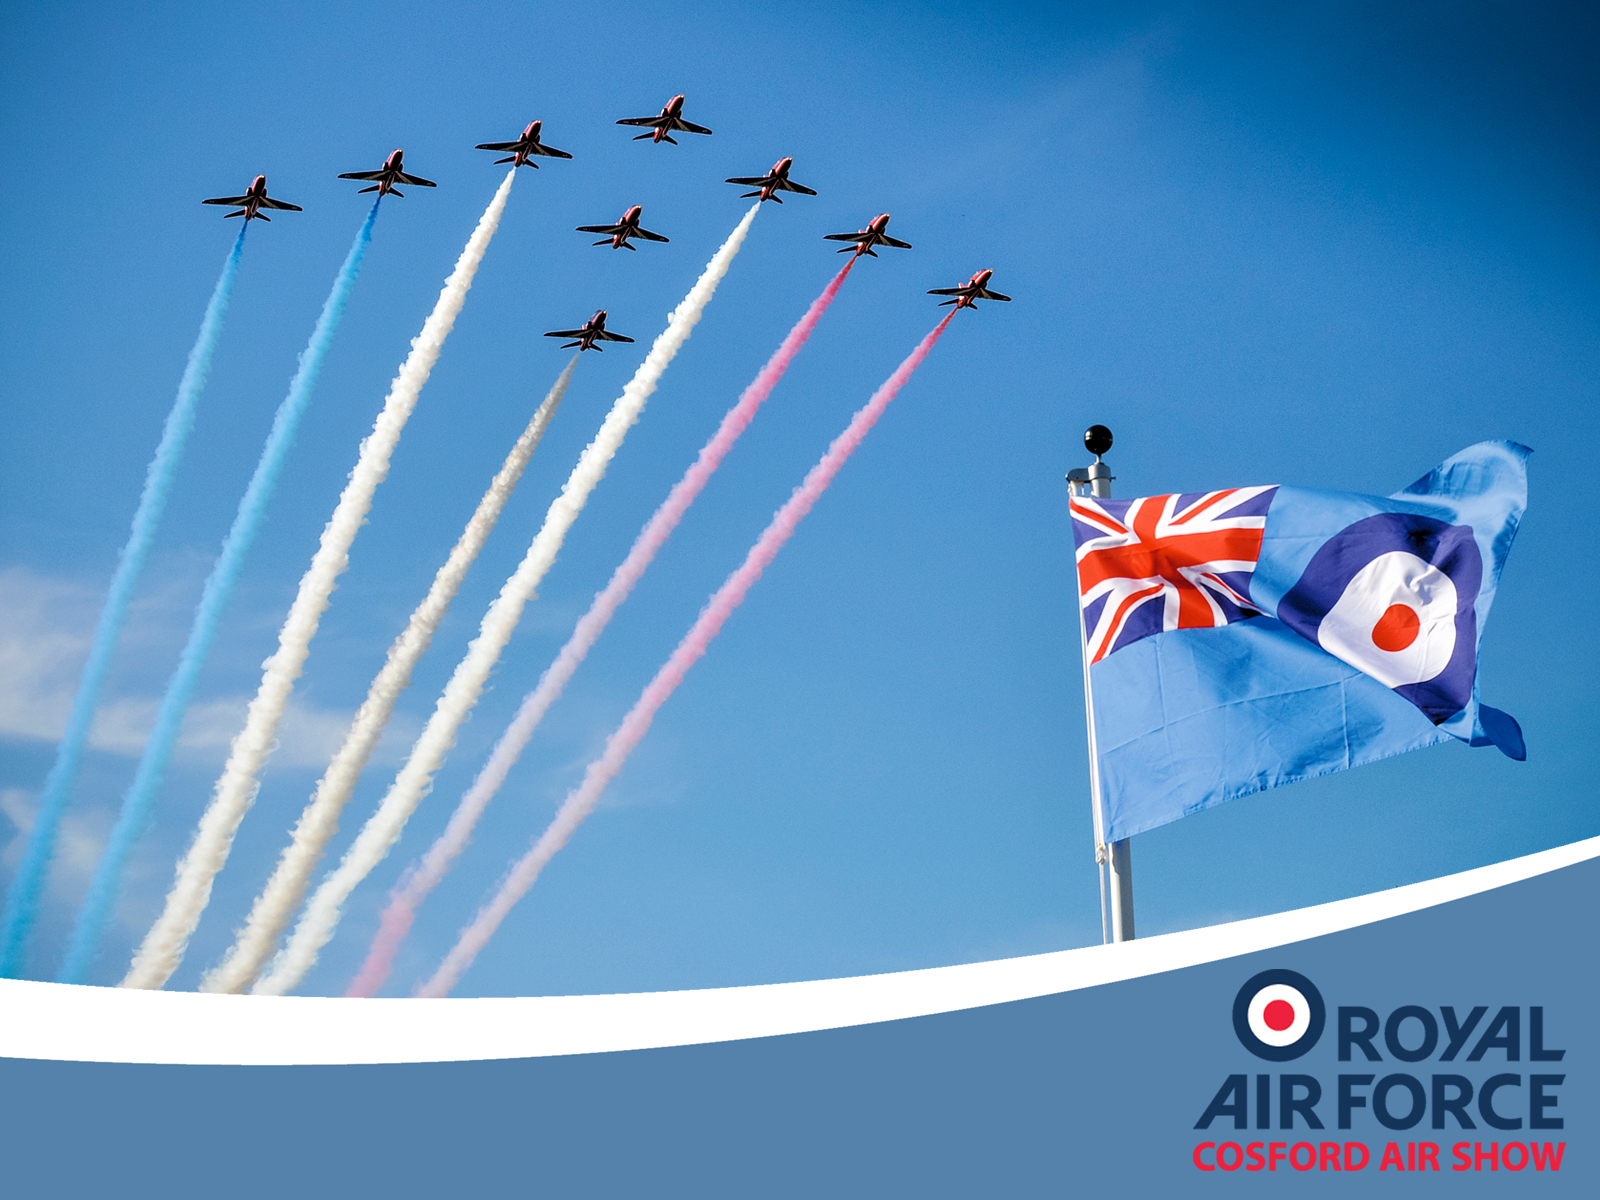 AIRSHOW NEWS: Tickets now on sale for Award Winning RAF Cosford Air Show